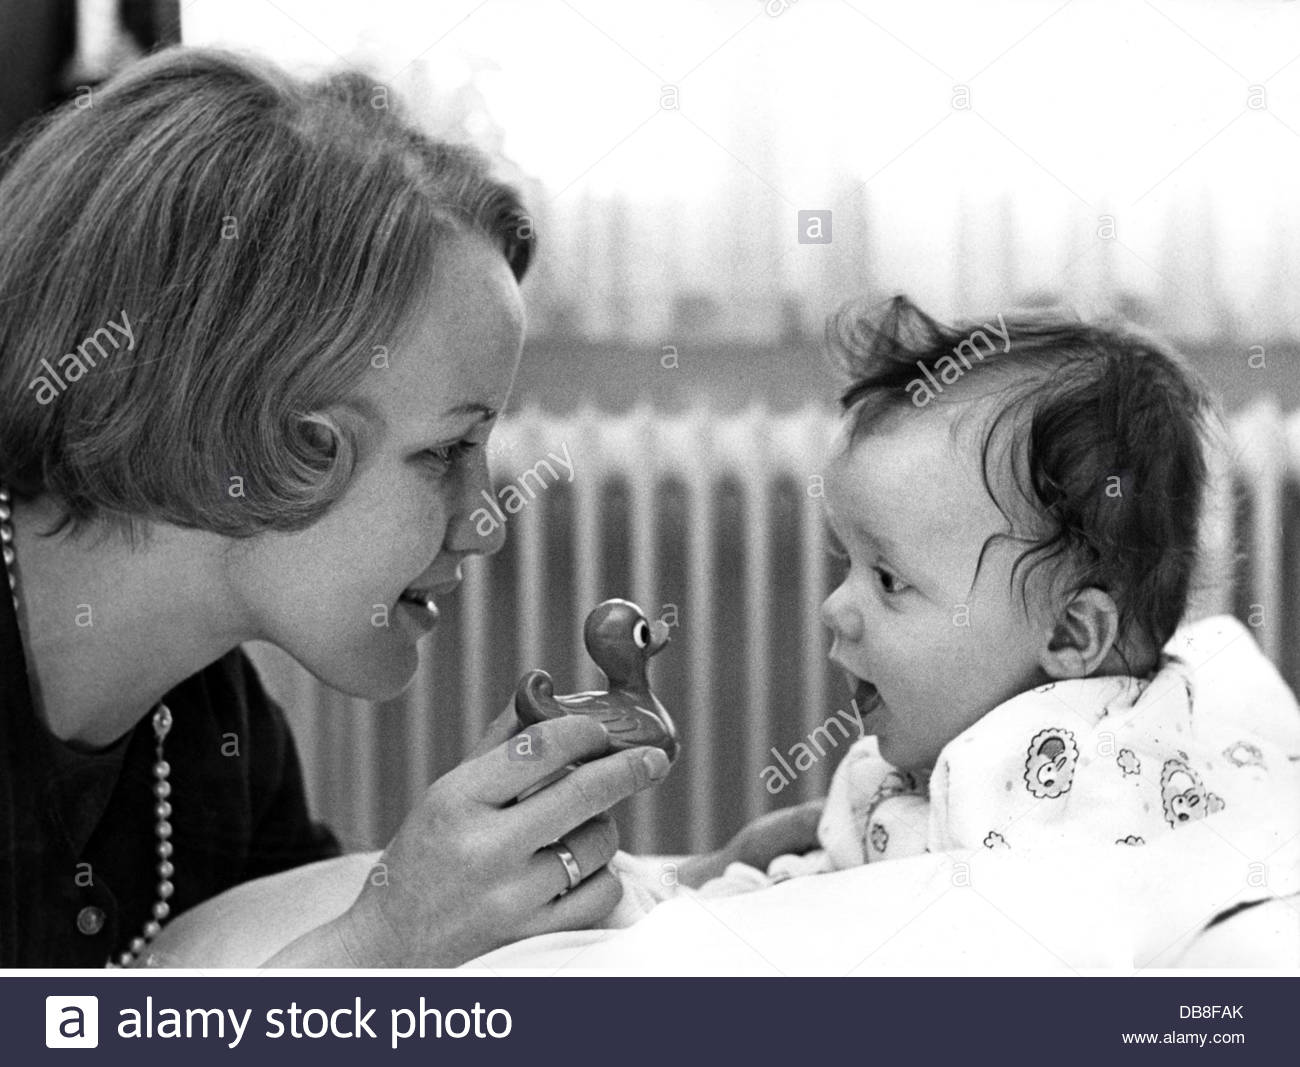 people, family, mother with son, daughter, mother playing with baby, 1960s, Additional-Rights-Clearences-NA - Stock Image